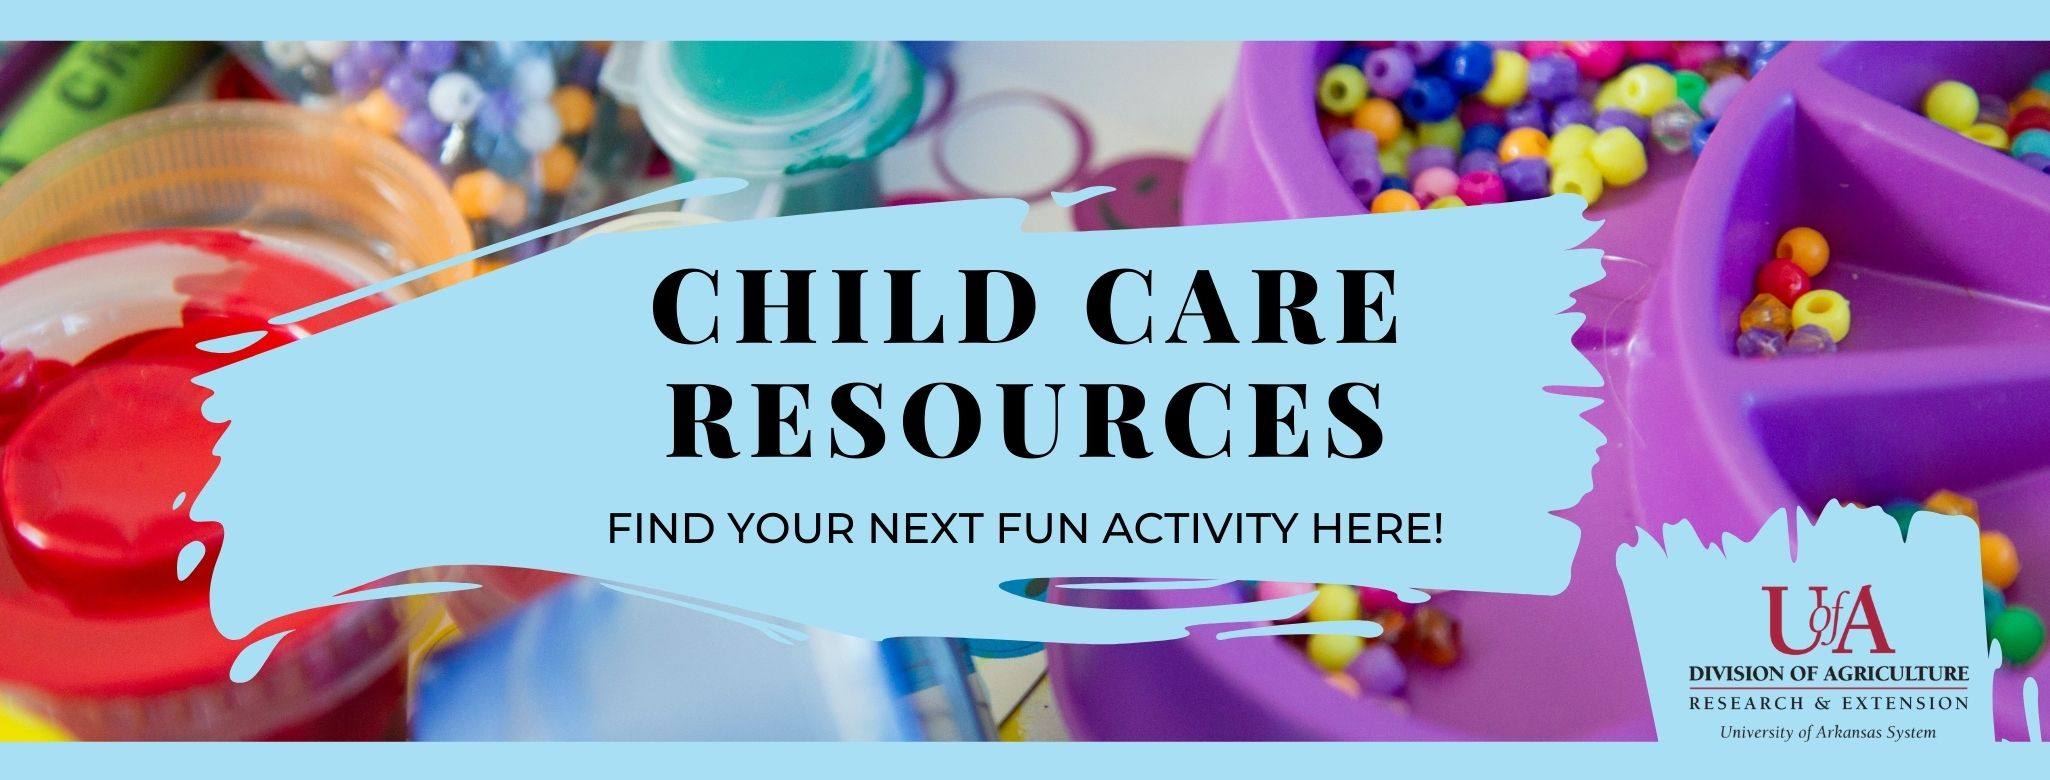 Child care resources - find your next fun activity here